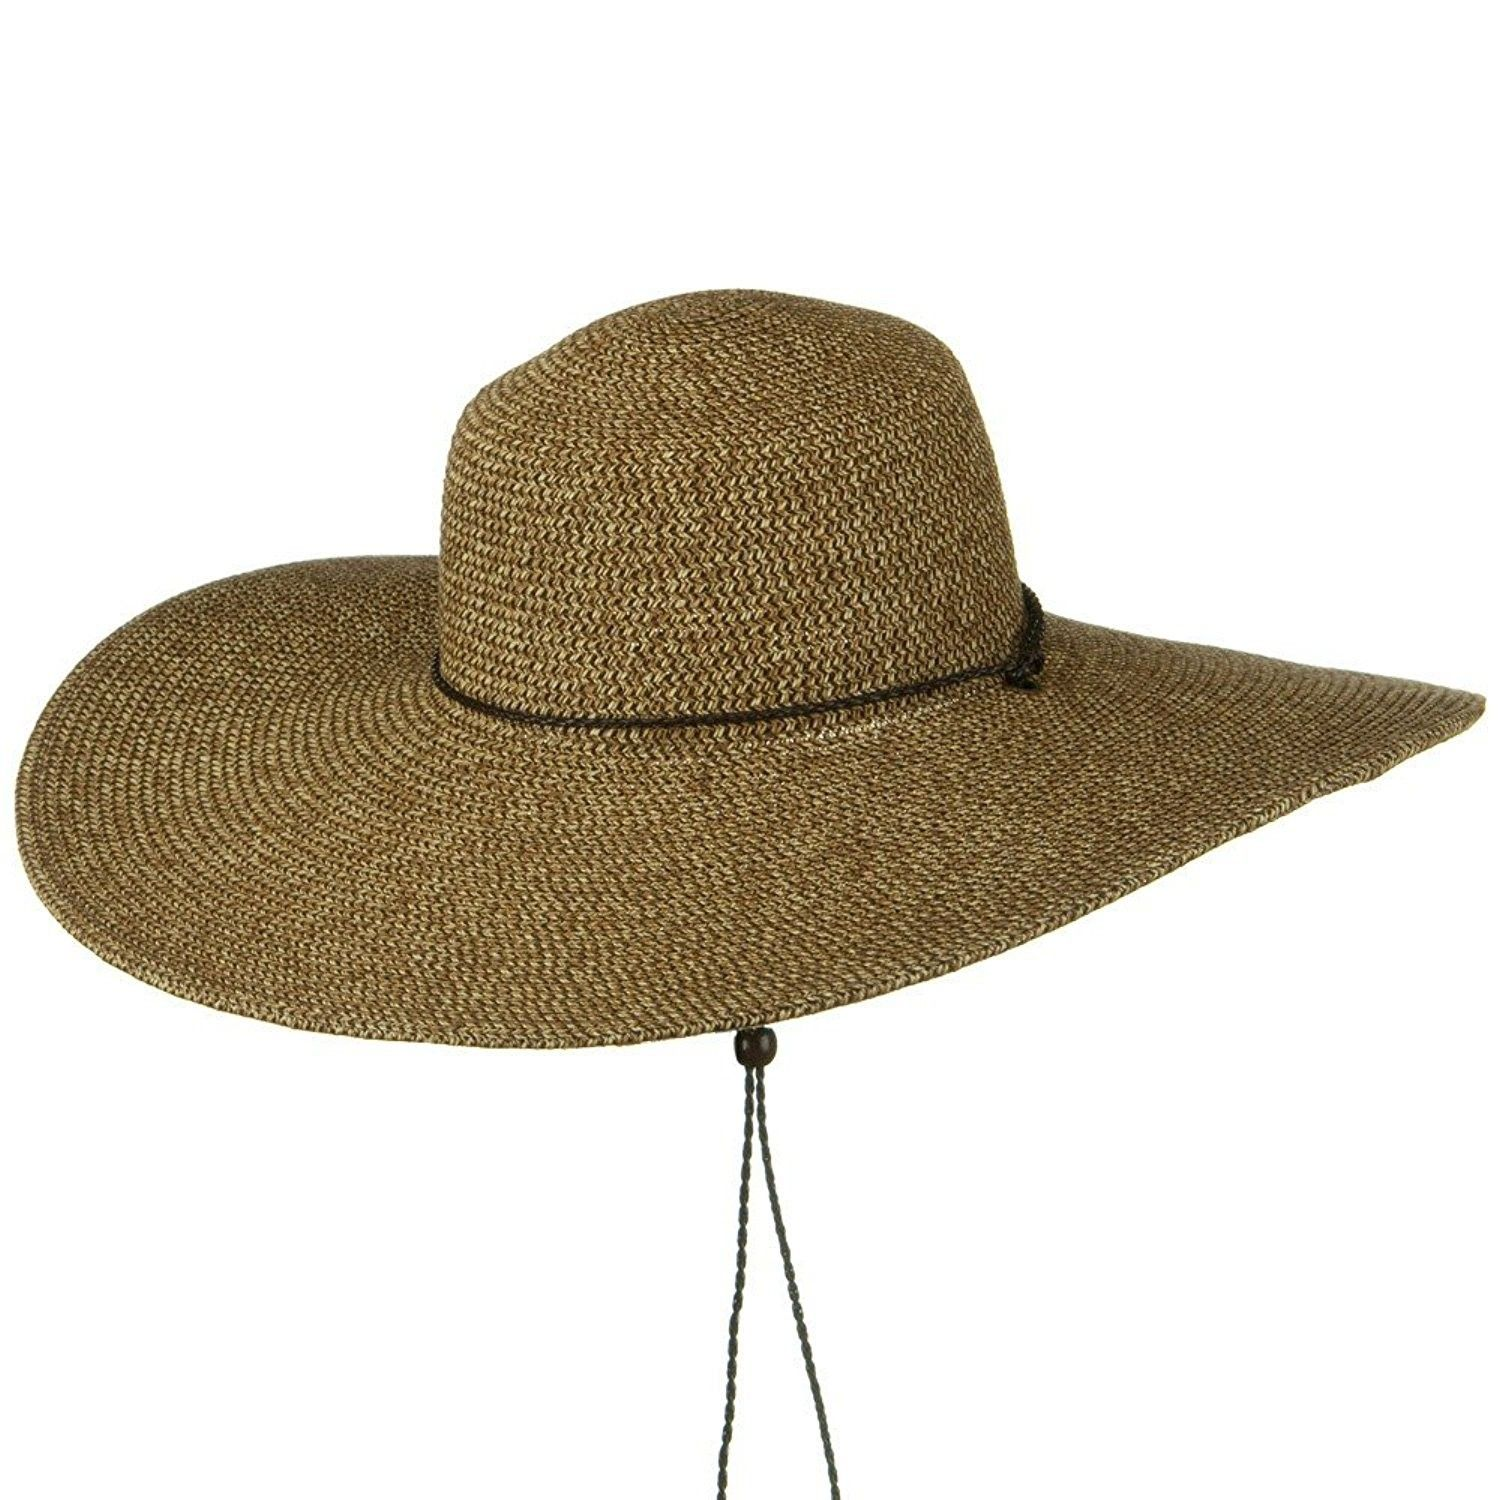 5 1 2 Inches Wide Brim Tweed Straw Hat - Natural Brown Tweed ... e6de24aa13d2